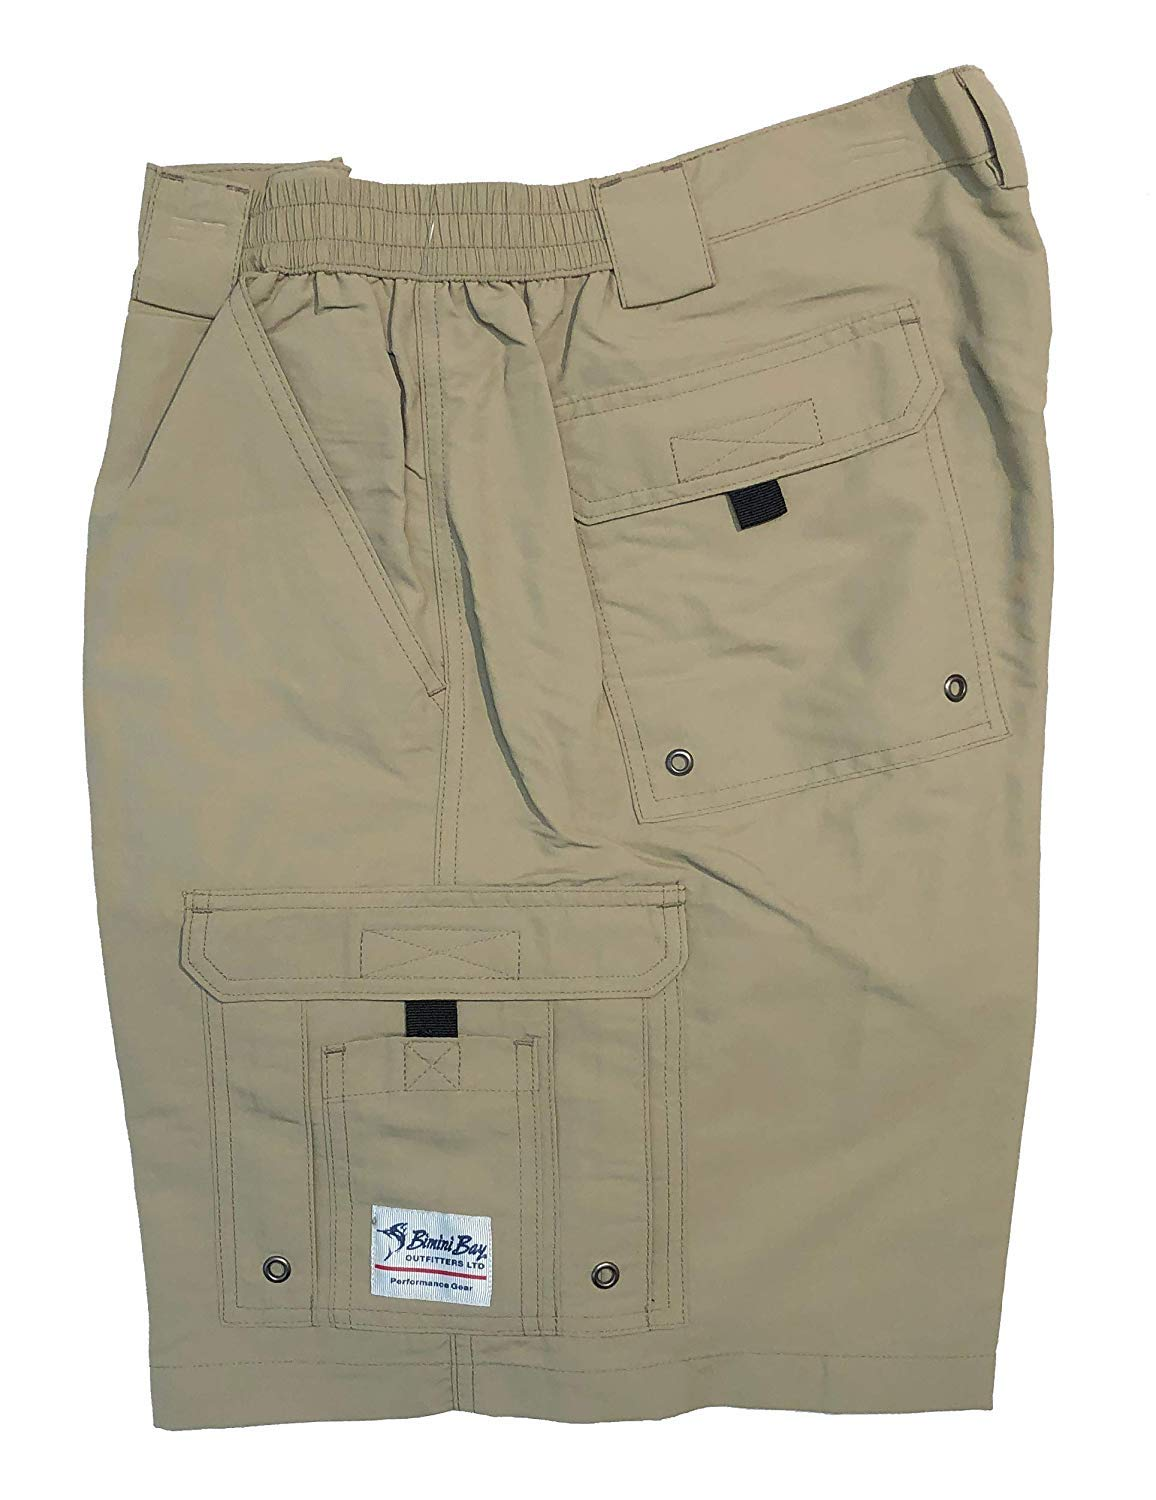 Bimini Bay Outfitters Boca Grande Short II Bloodguard, Color: Khaki, Size: 34 (31710-K-34) by Bimini Bay Outfitters